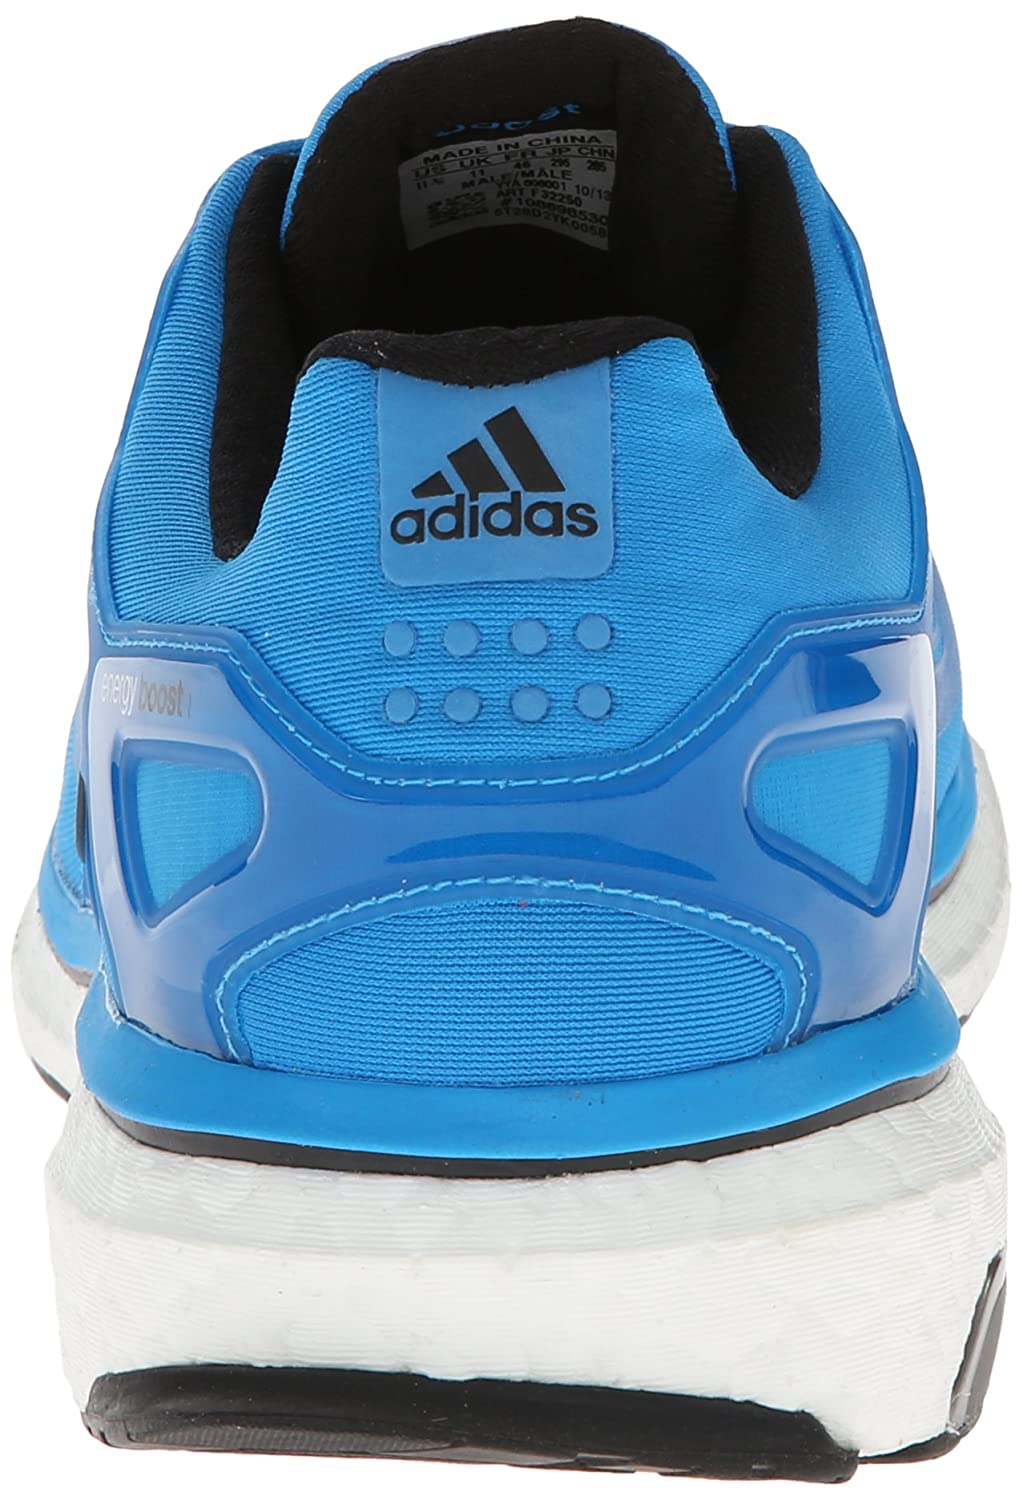 detailed look 8b5b4 5f51f Amazon.com  adidas Performance Mens Energy Boost 2 M Cushioned Running  Shoe  Running